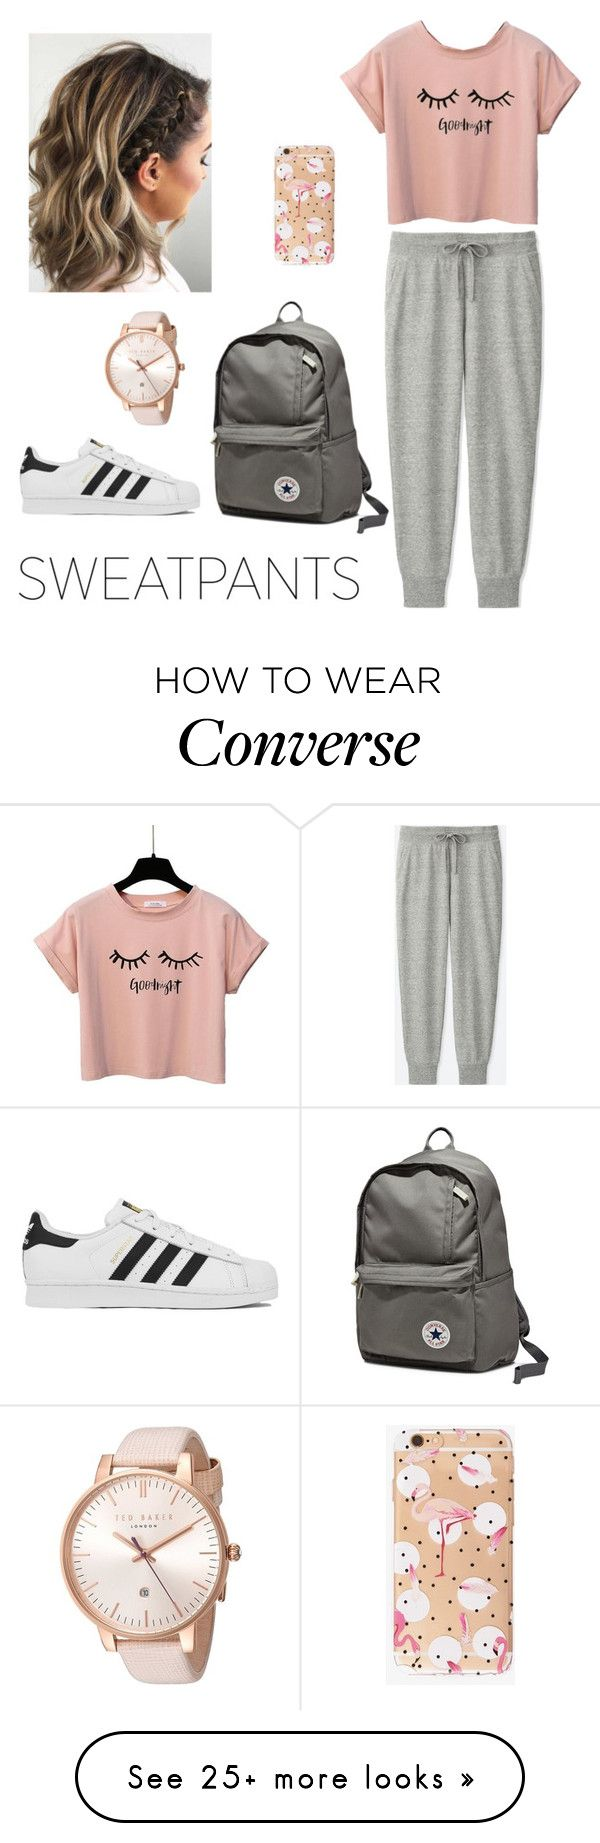 """""""Untitled #197"""" by evelina-bikina on Polyvore featuring Uniqlo, Converse, adidas and Ted Baker"""